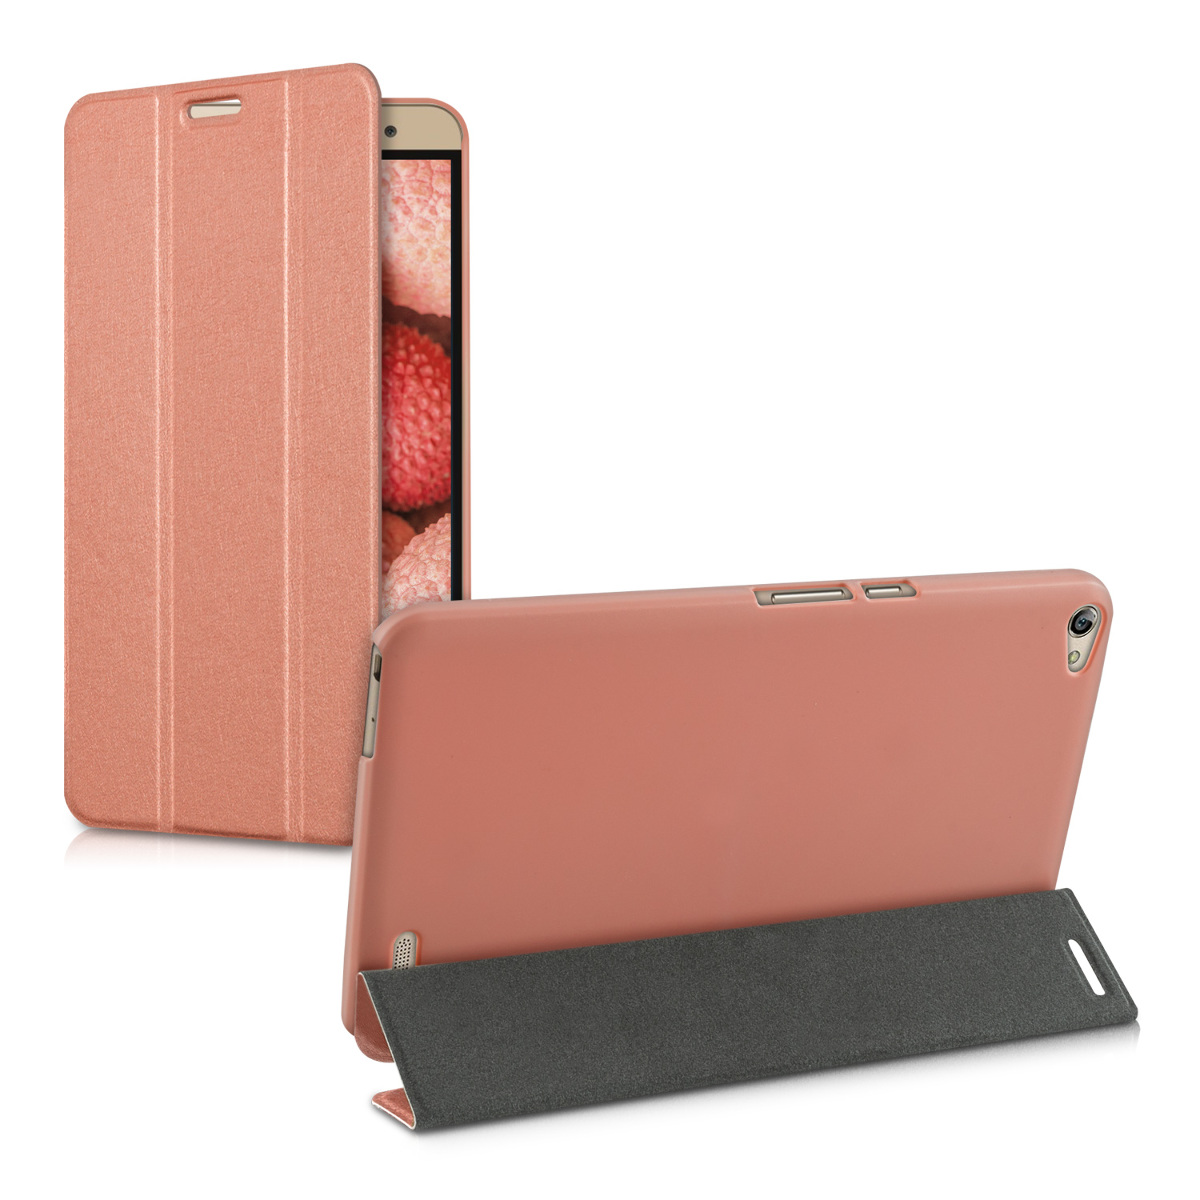 kwmobile-ELEGANT-ETUI-CUIR-POUR-HUAWEI-MEDIAPAD-X2-7-0-SUPPORT-HOUSSE-PROTEGE